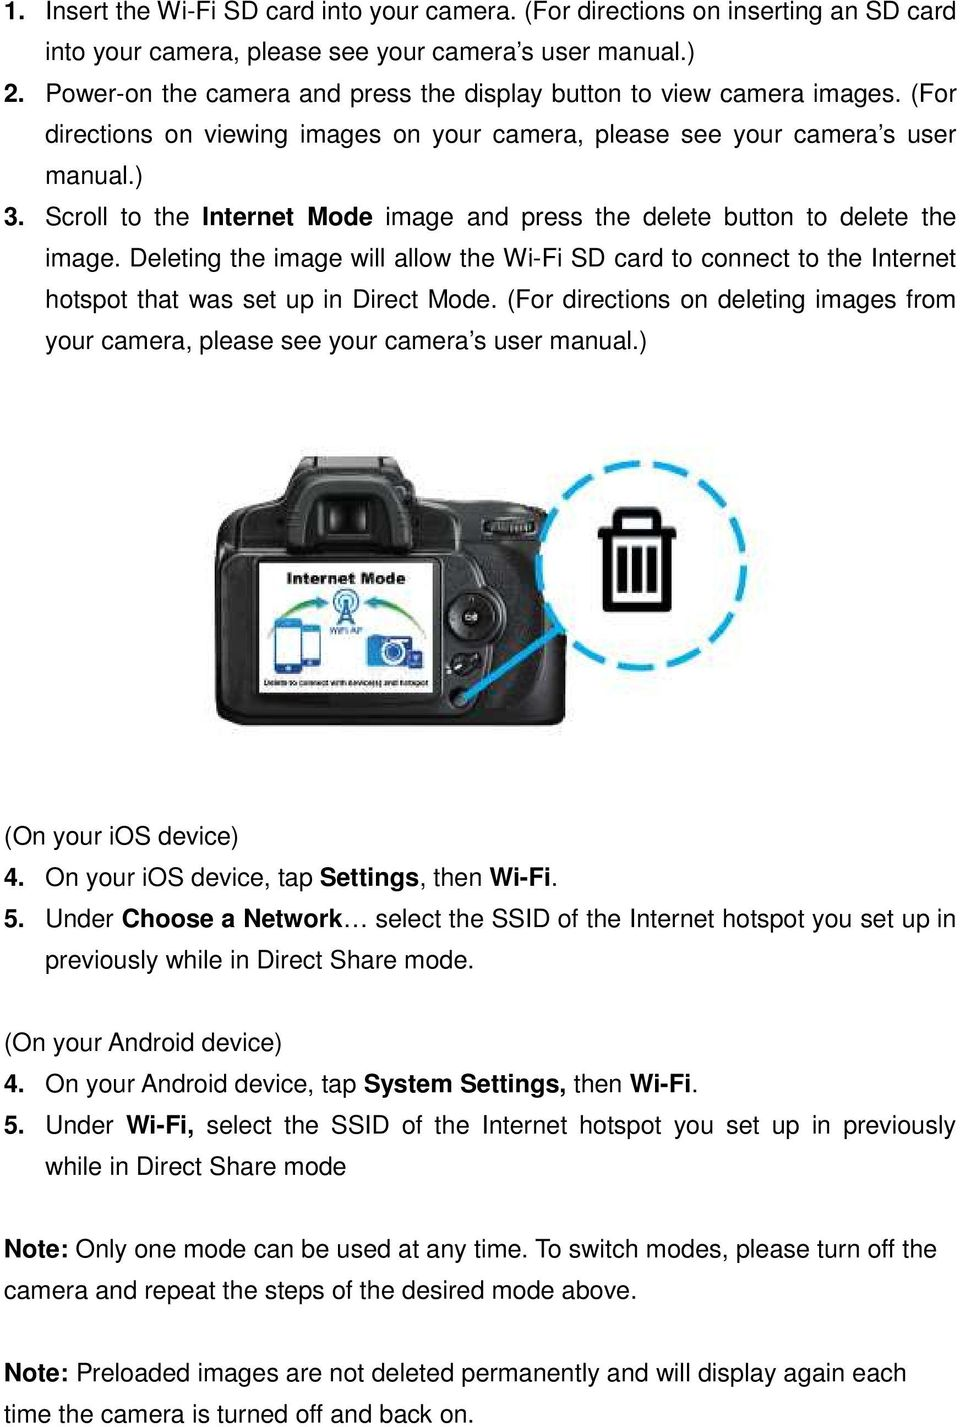 Scroll to the Internet Mode image and press the delete button to delete the image. Deleting the image will allow the Wi-Fi SD card to connect to the Internet hotspot that was set up in Direct Mode.